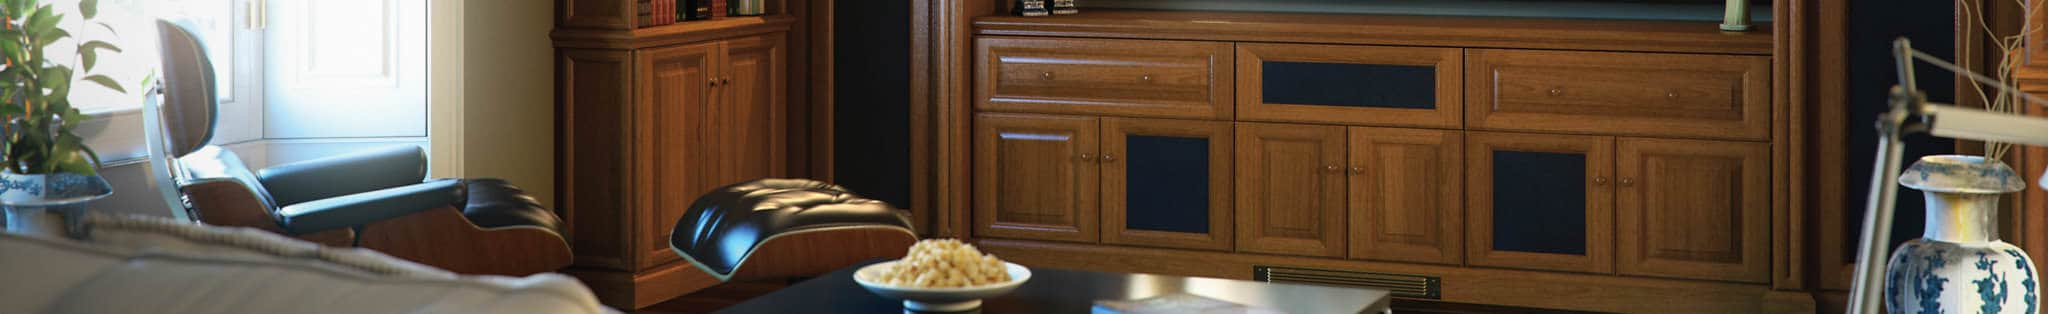 fitted cabinets with hidden speakers